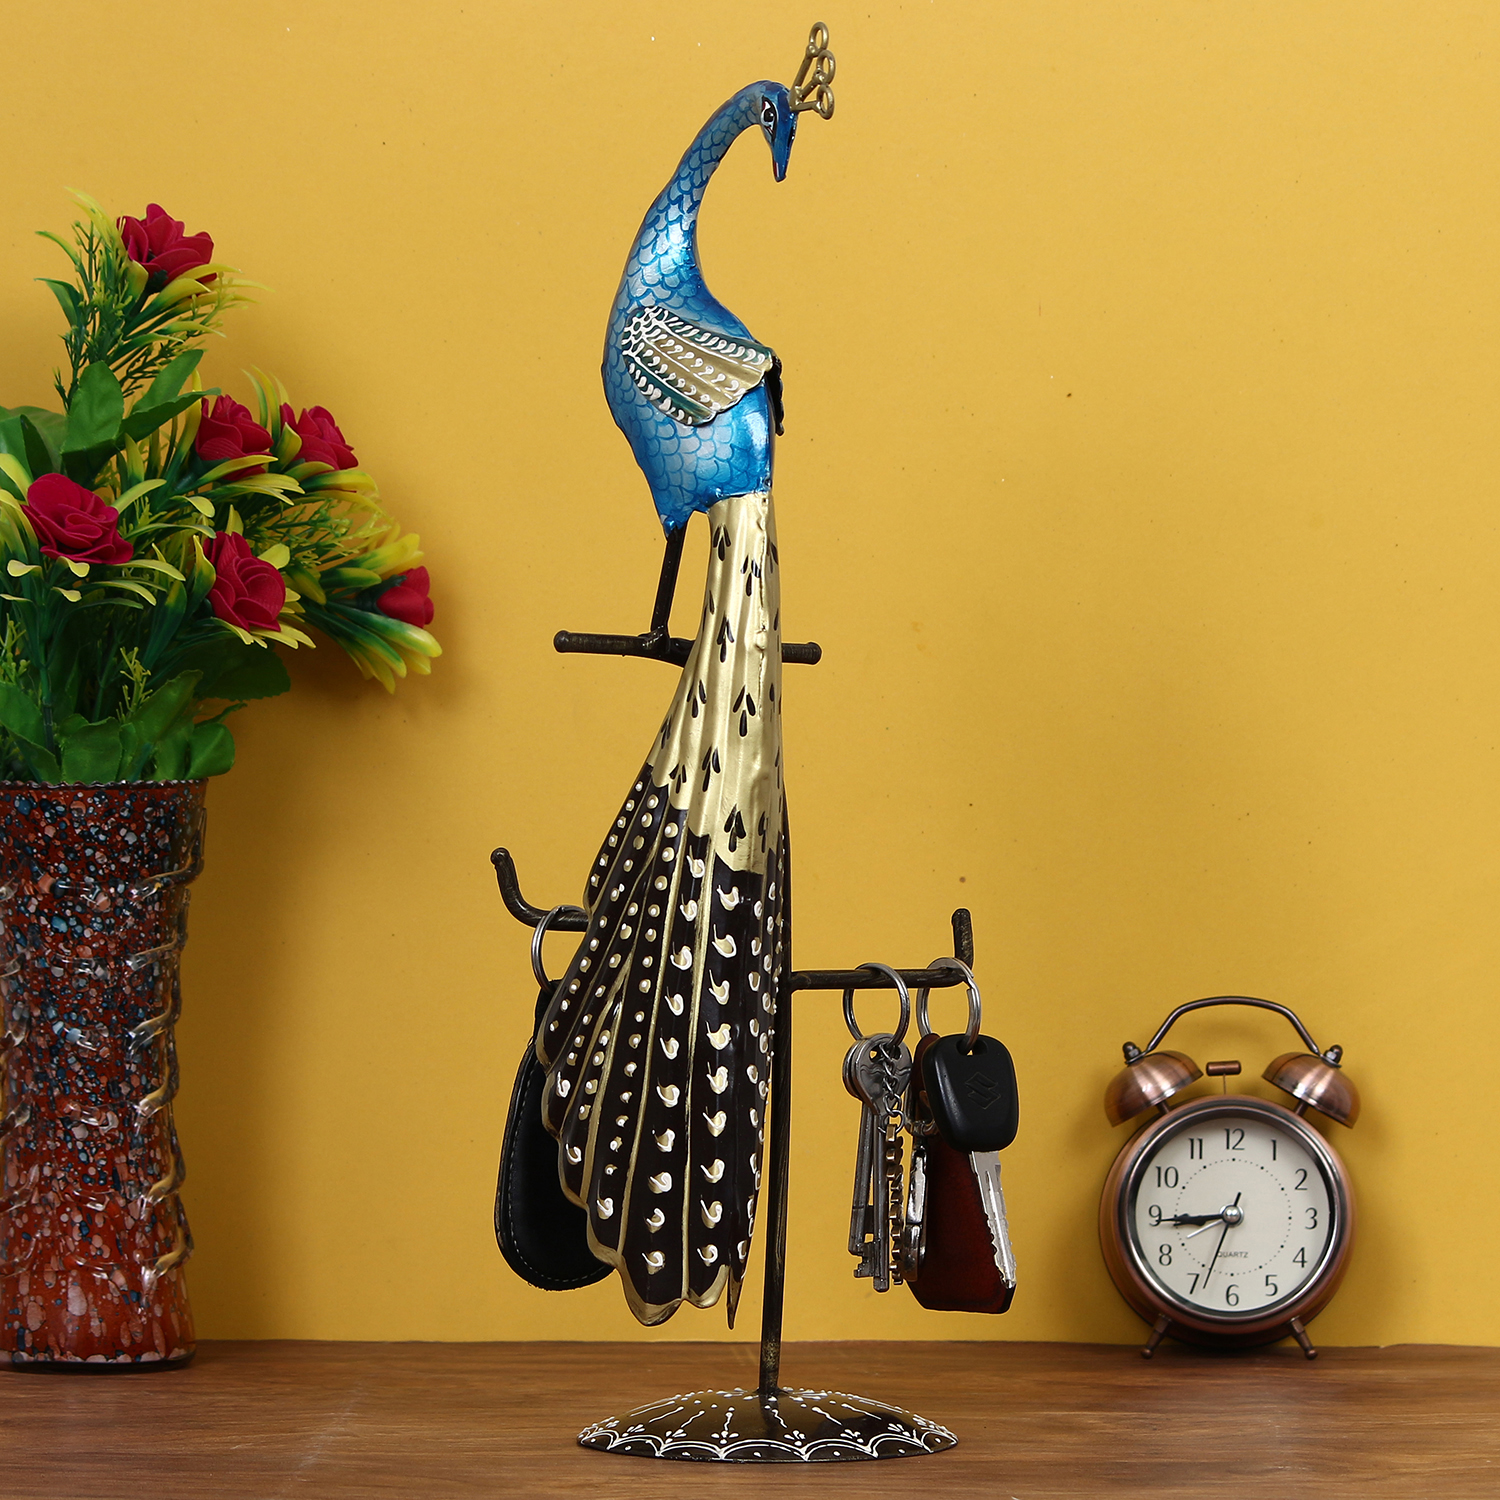 Colorful Peocock Handcrafted Iron Decorative Showpiece Indian Home Decor